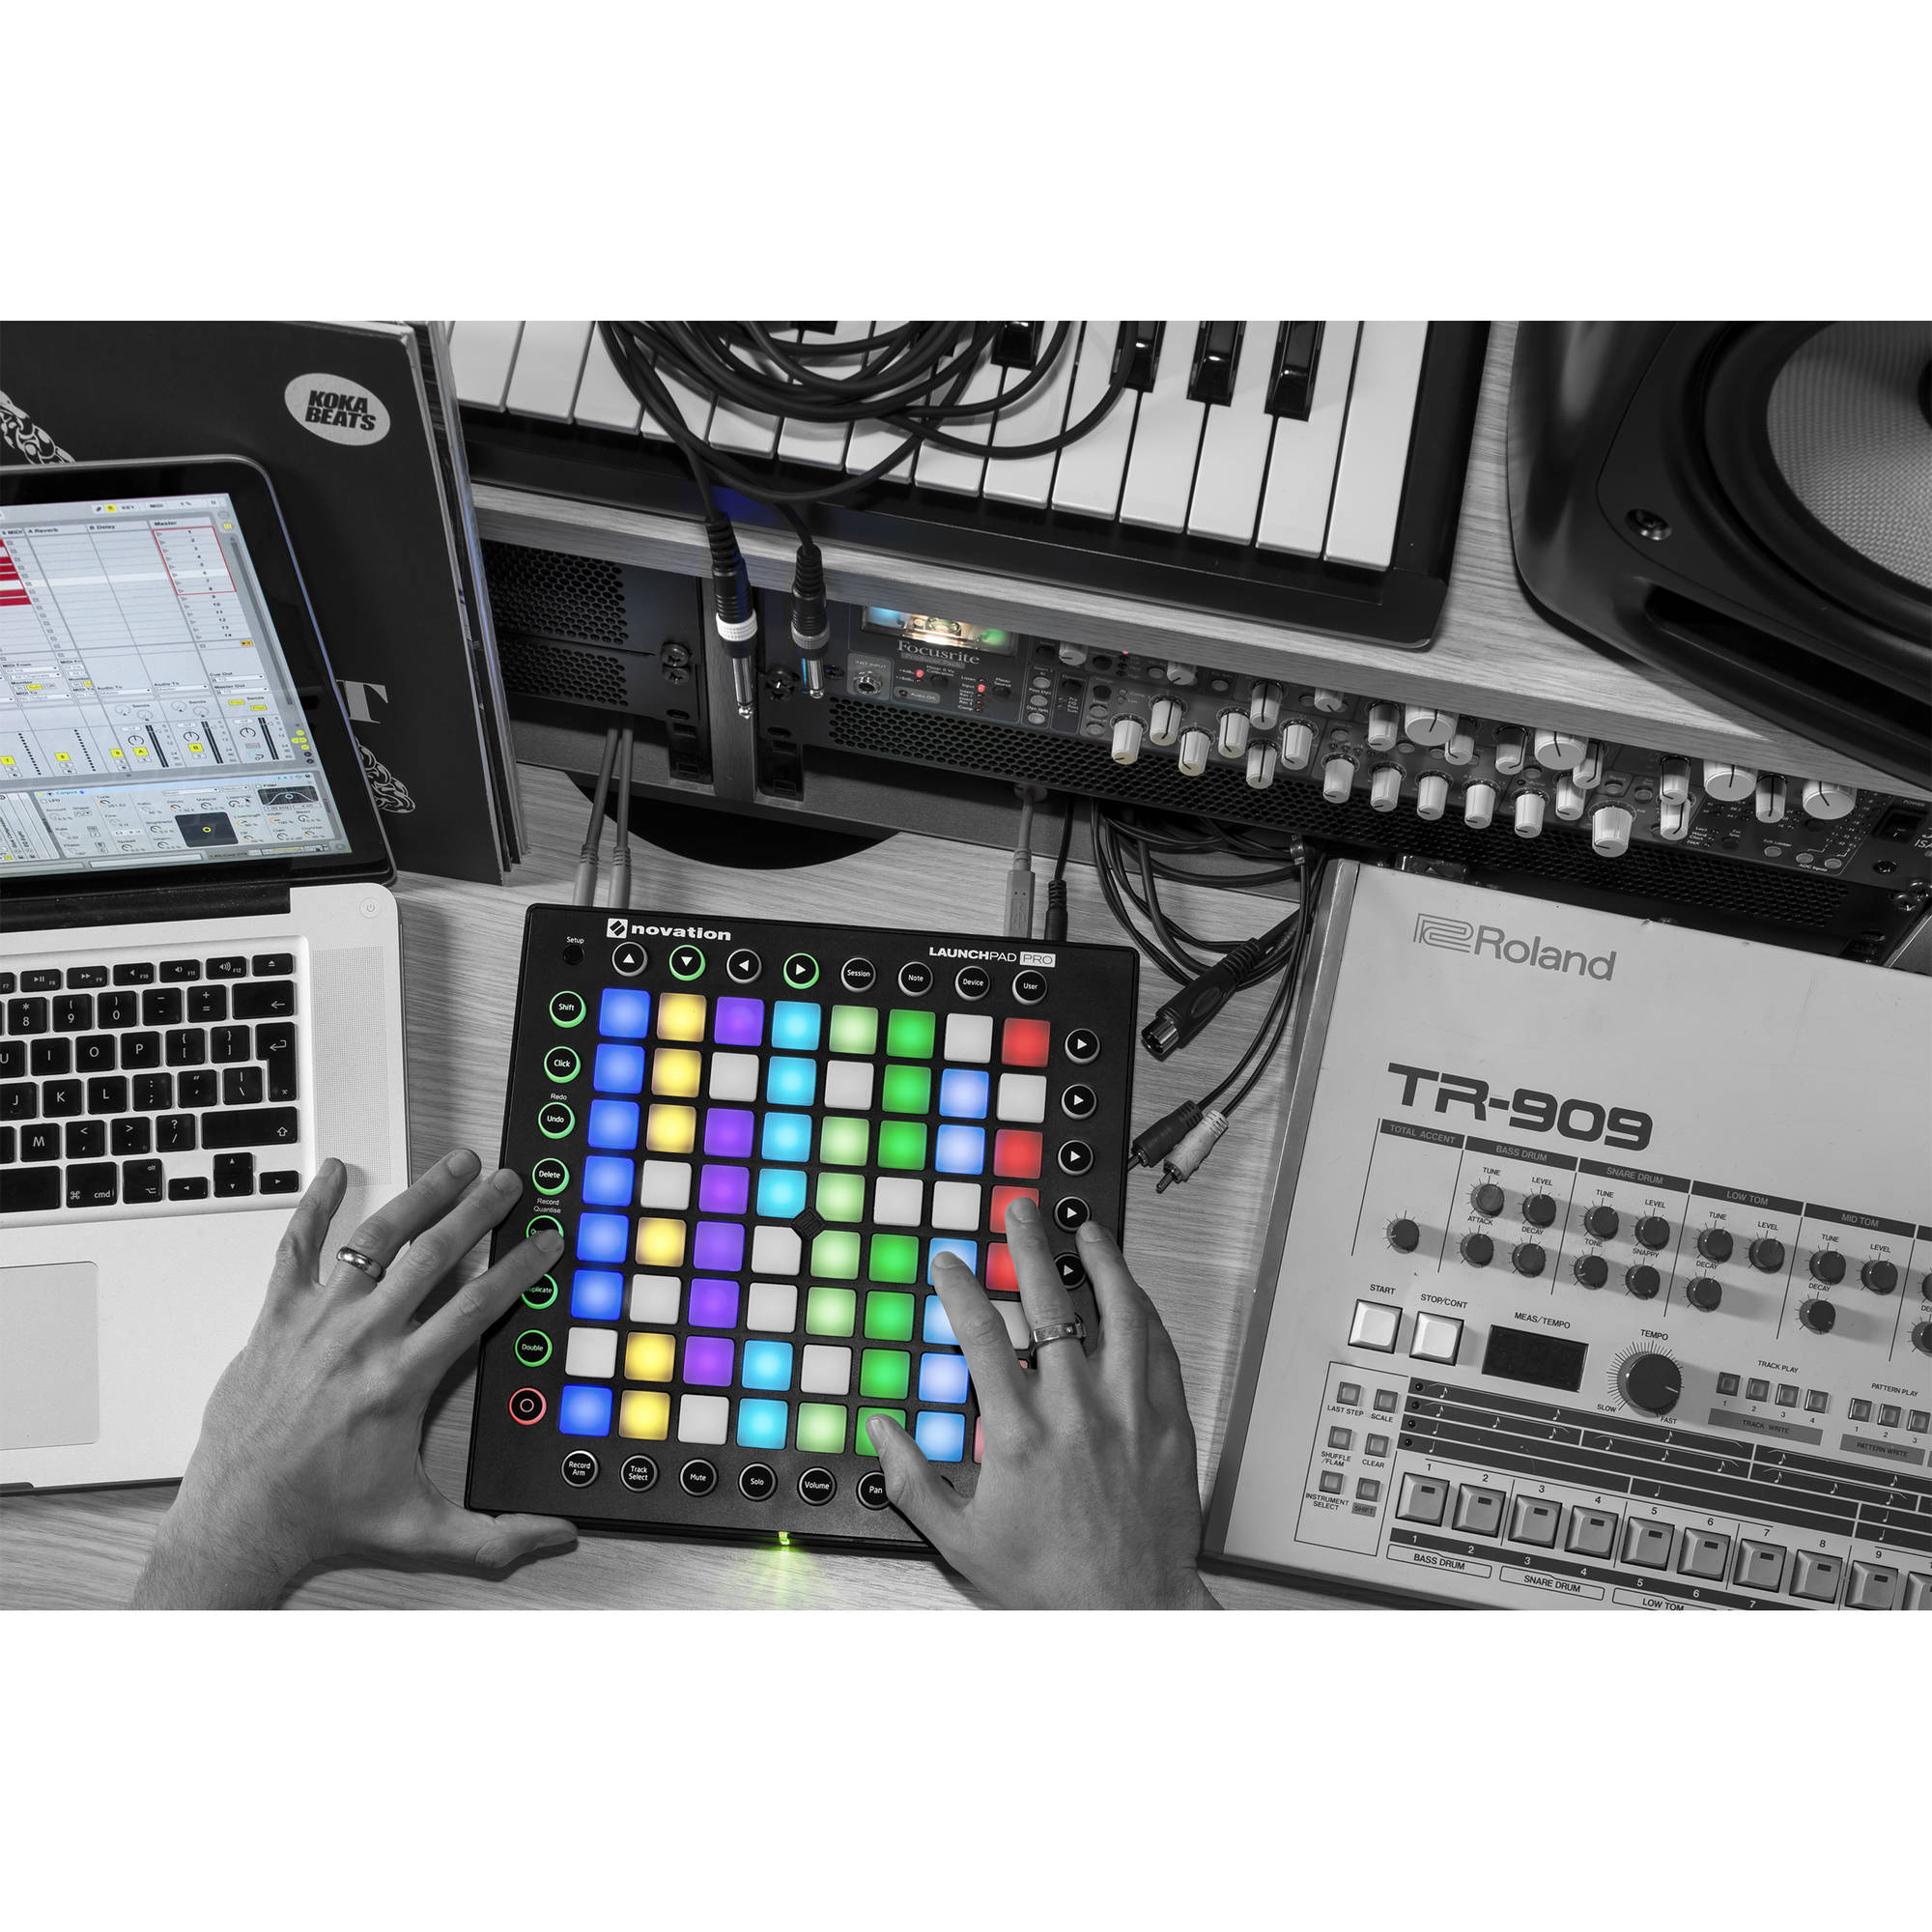 Novation Launchpad Pro MIDI Controller Kit with Ableton Live Suite and  Decksaver Cover